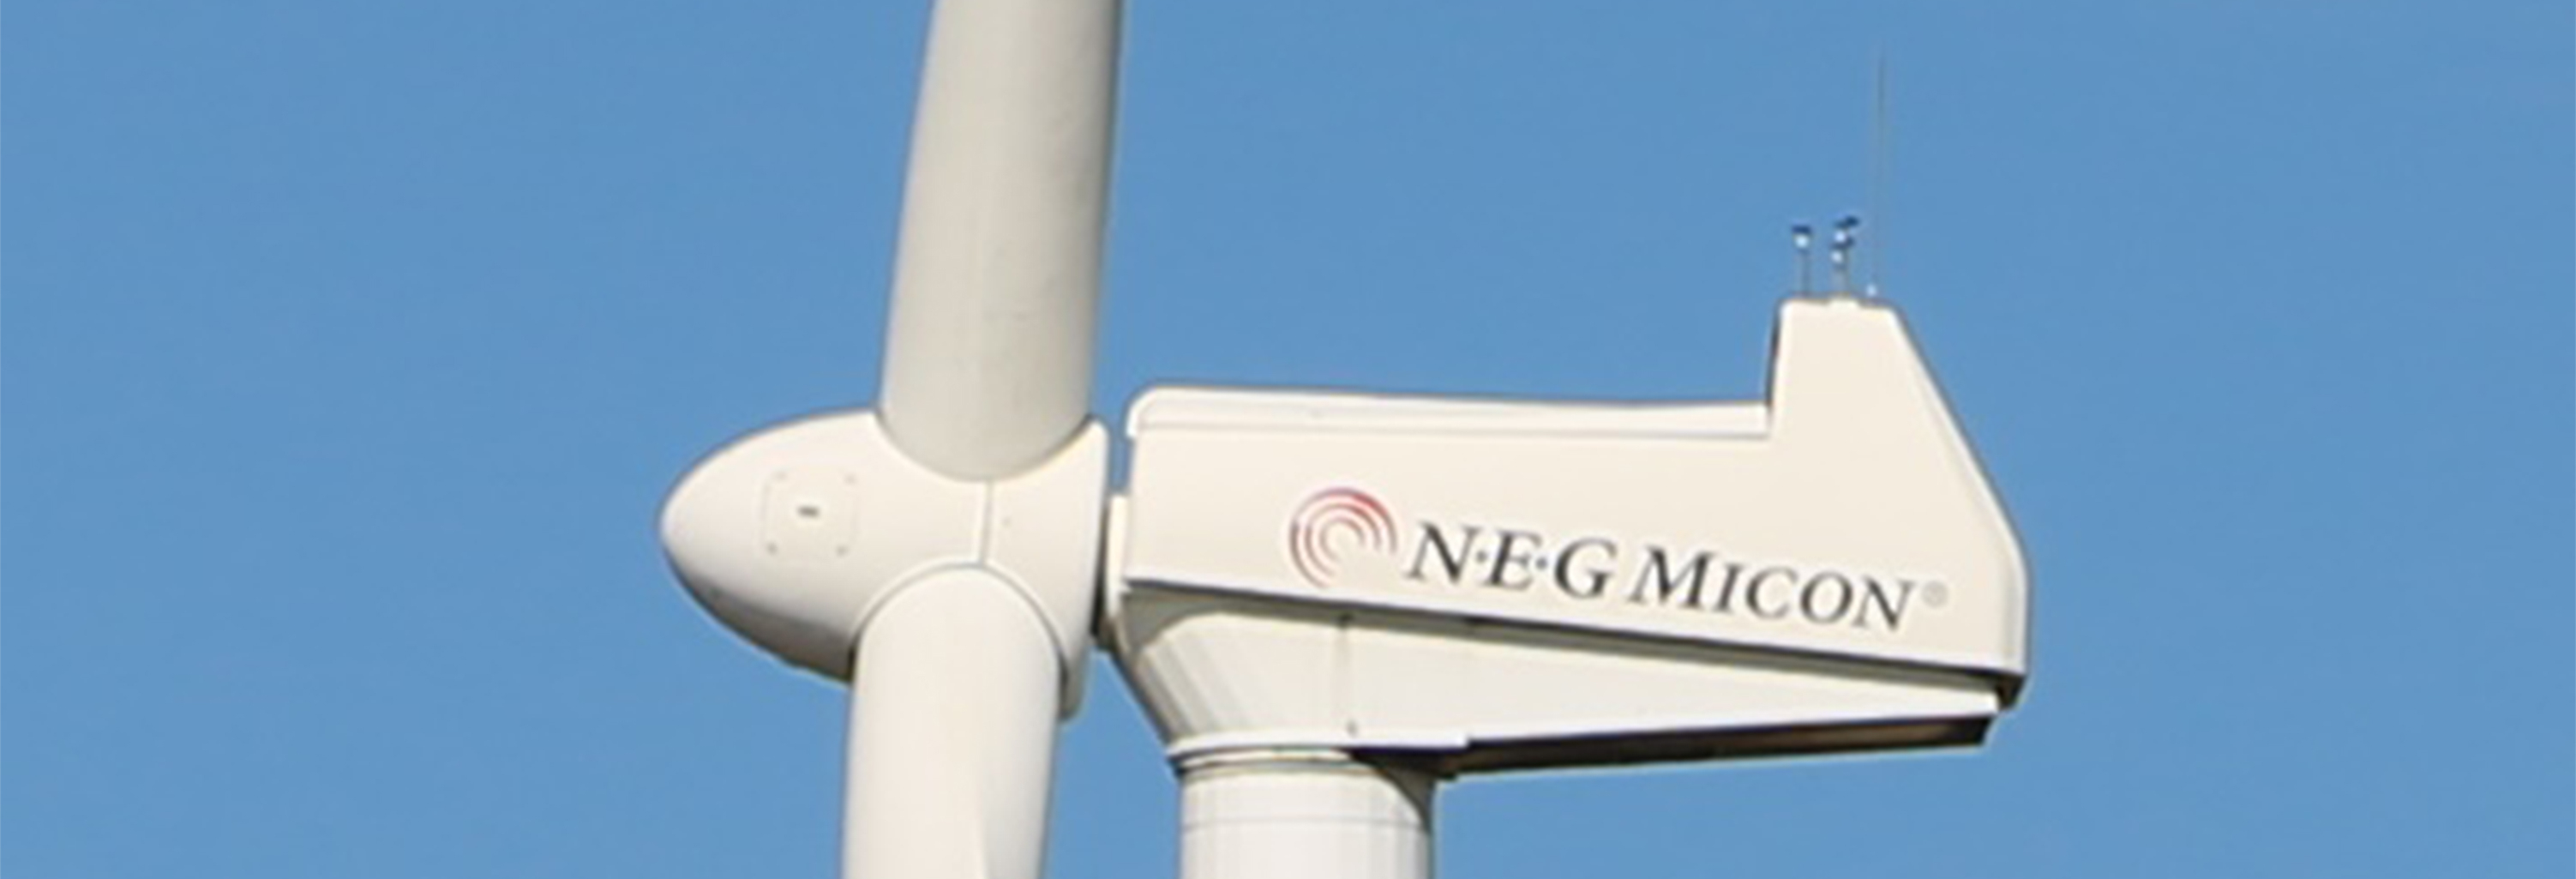 NEG Micon | Wind Turbine Replacement Parts - ICP Wind